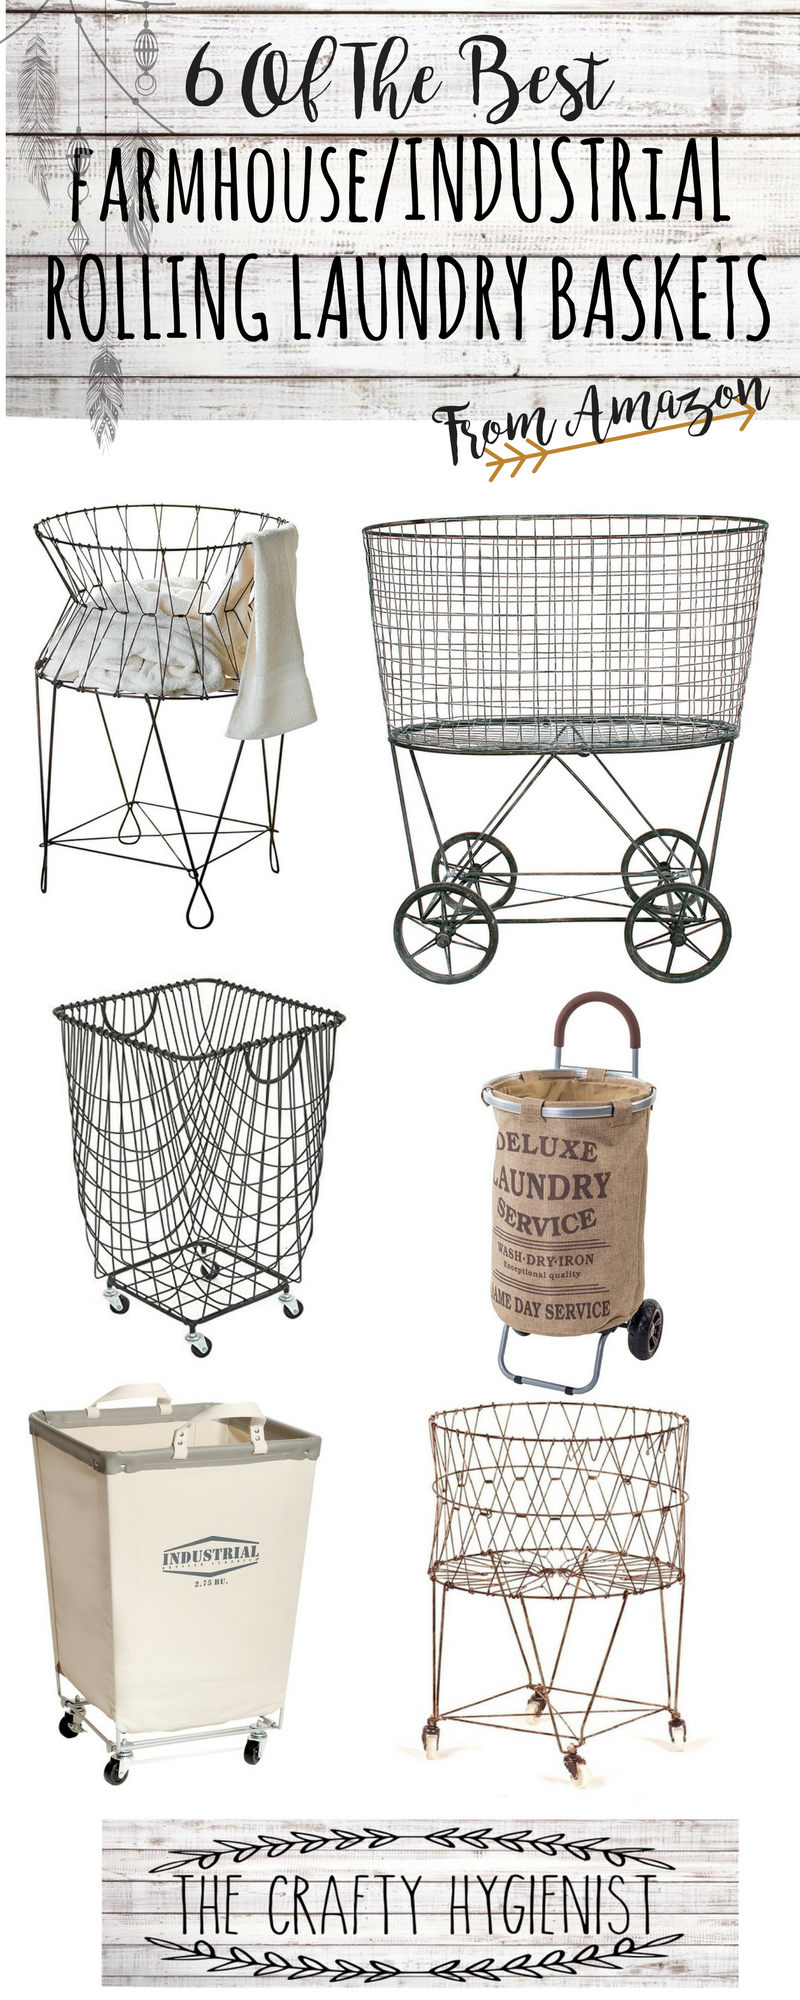 6 Of The Best Farmhouse Laundry Baskets In 2020 Farmhouse